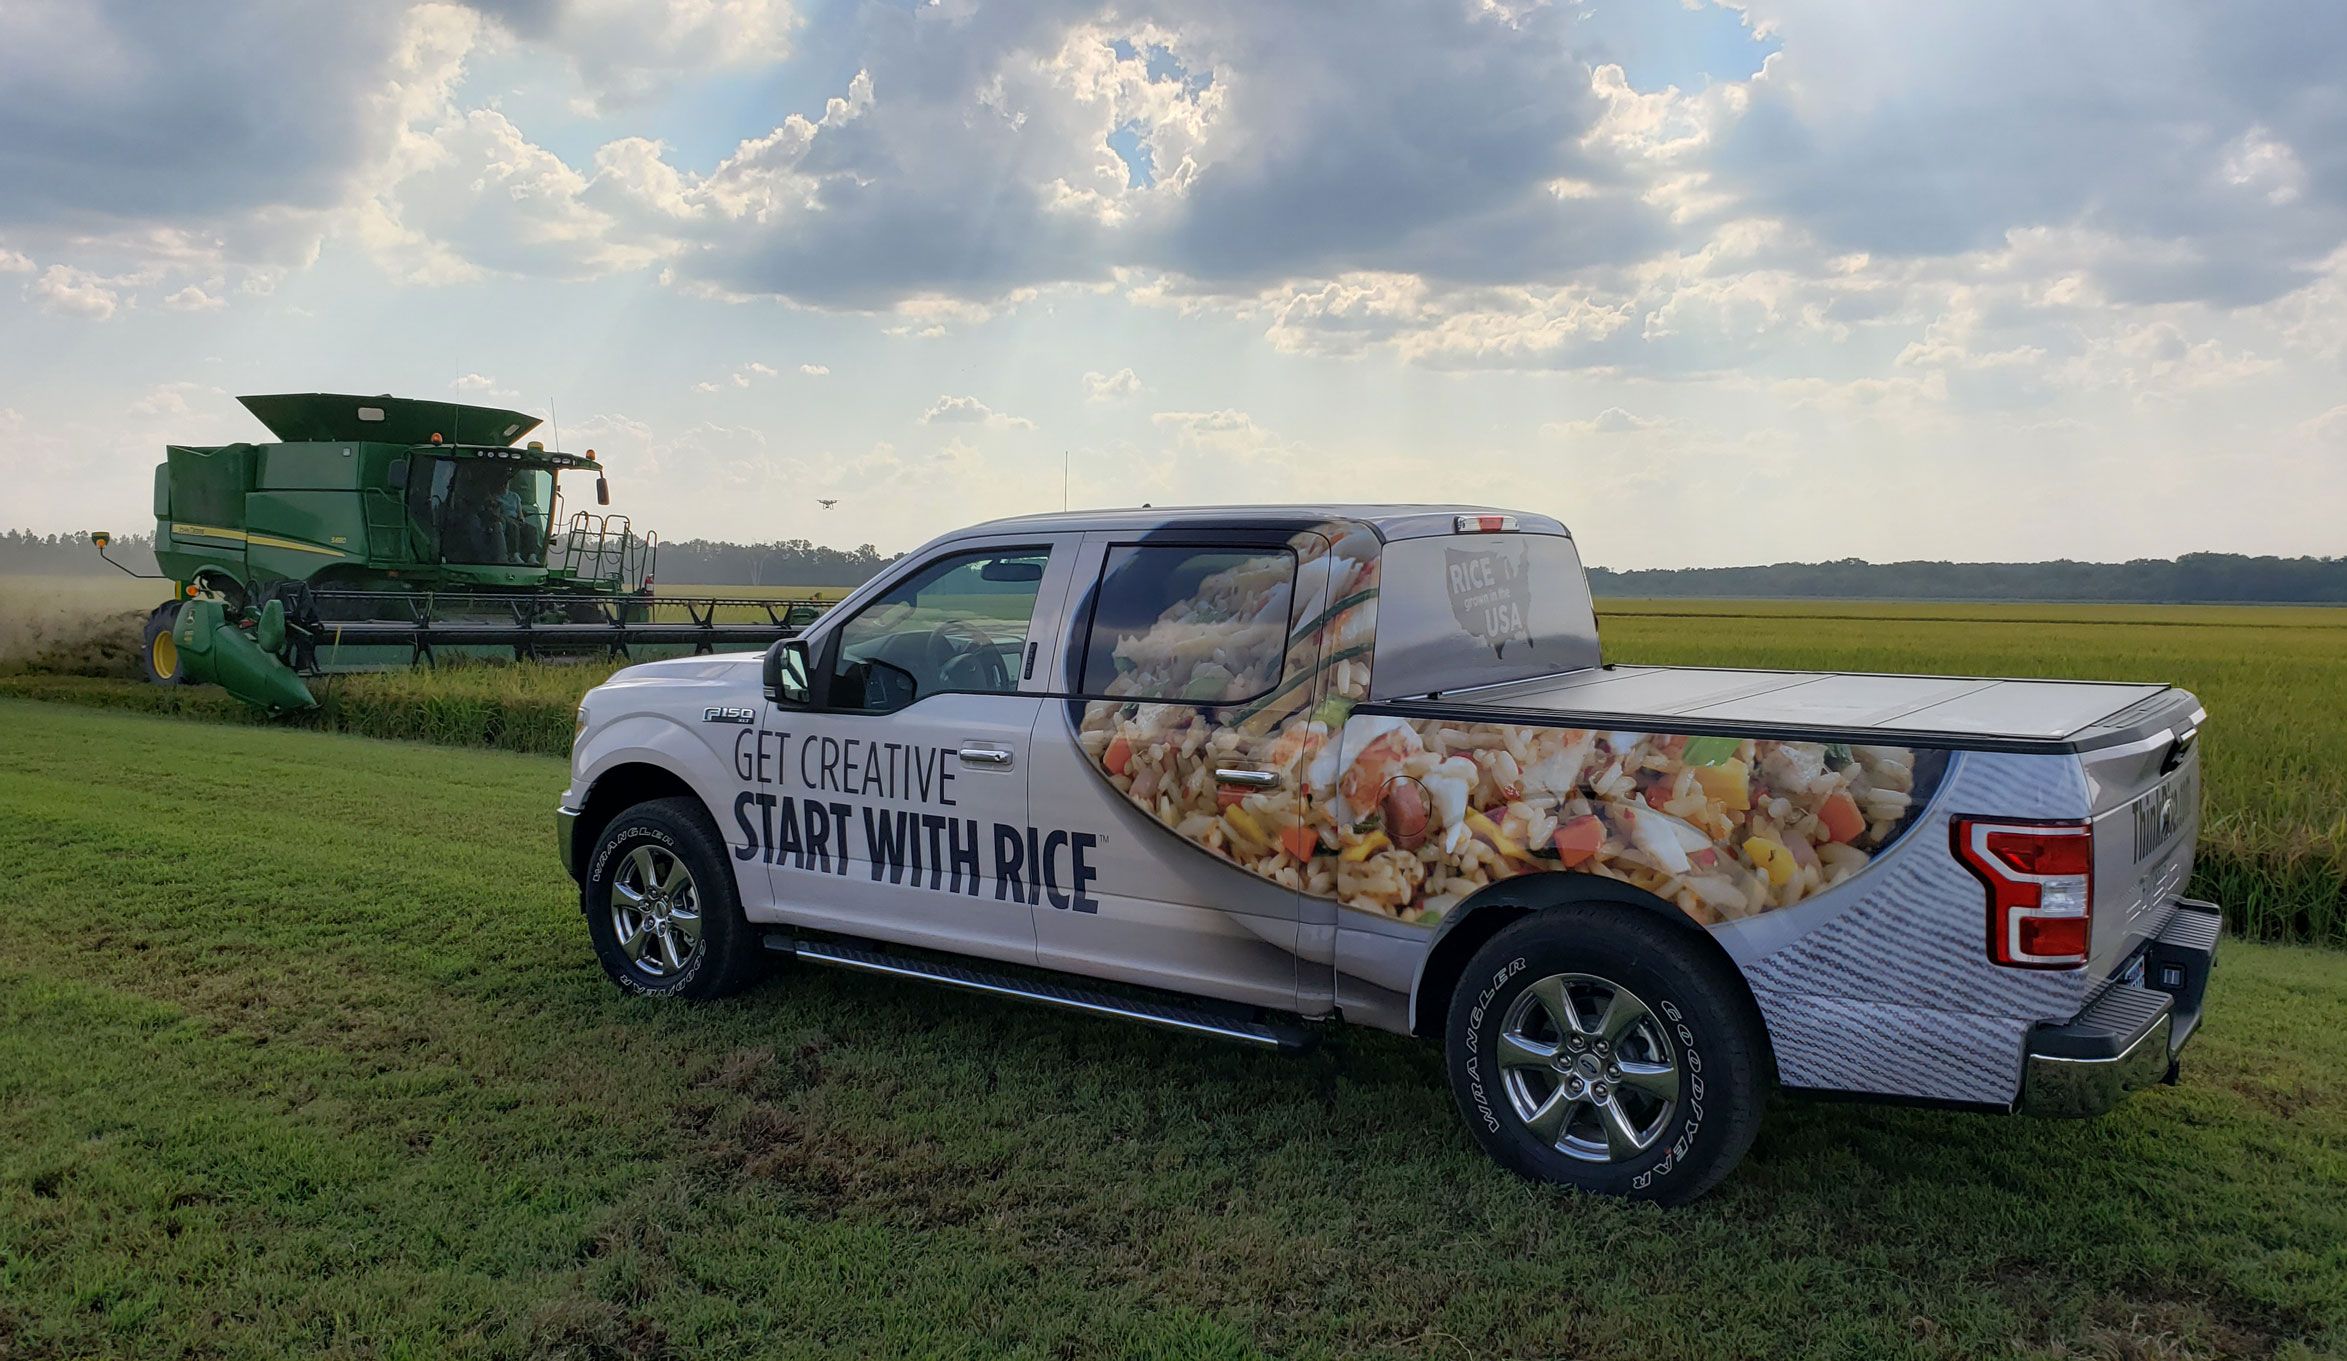 2019 Think Rice Truck sits in rice field in front of green combine, sun shining through clouds